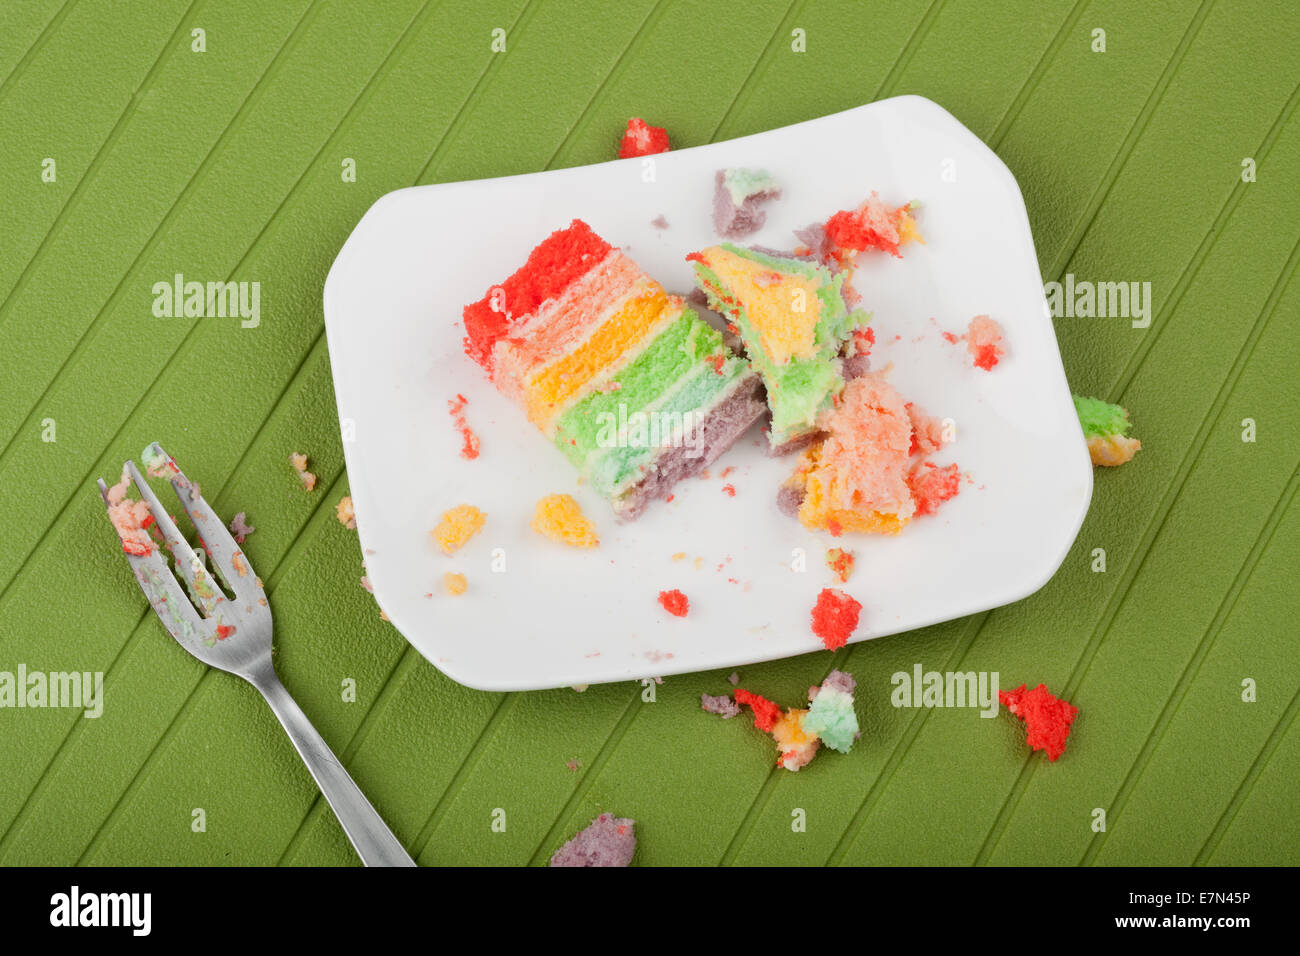 Messy leftover rainbow cake on a plate with crumbs around it - Stock Image